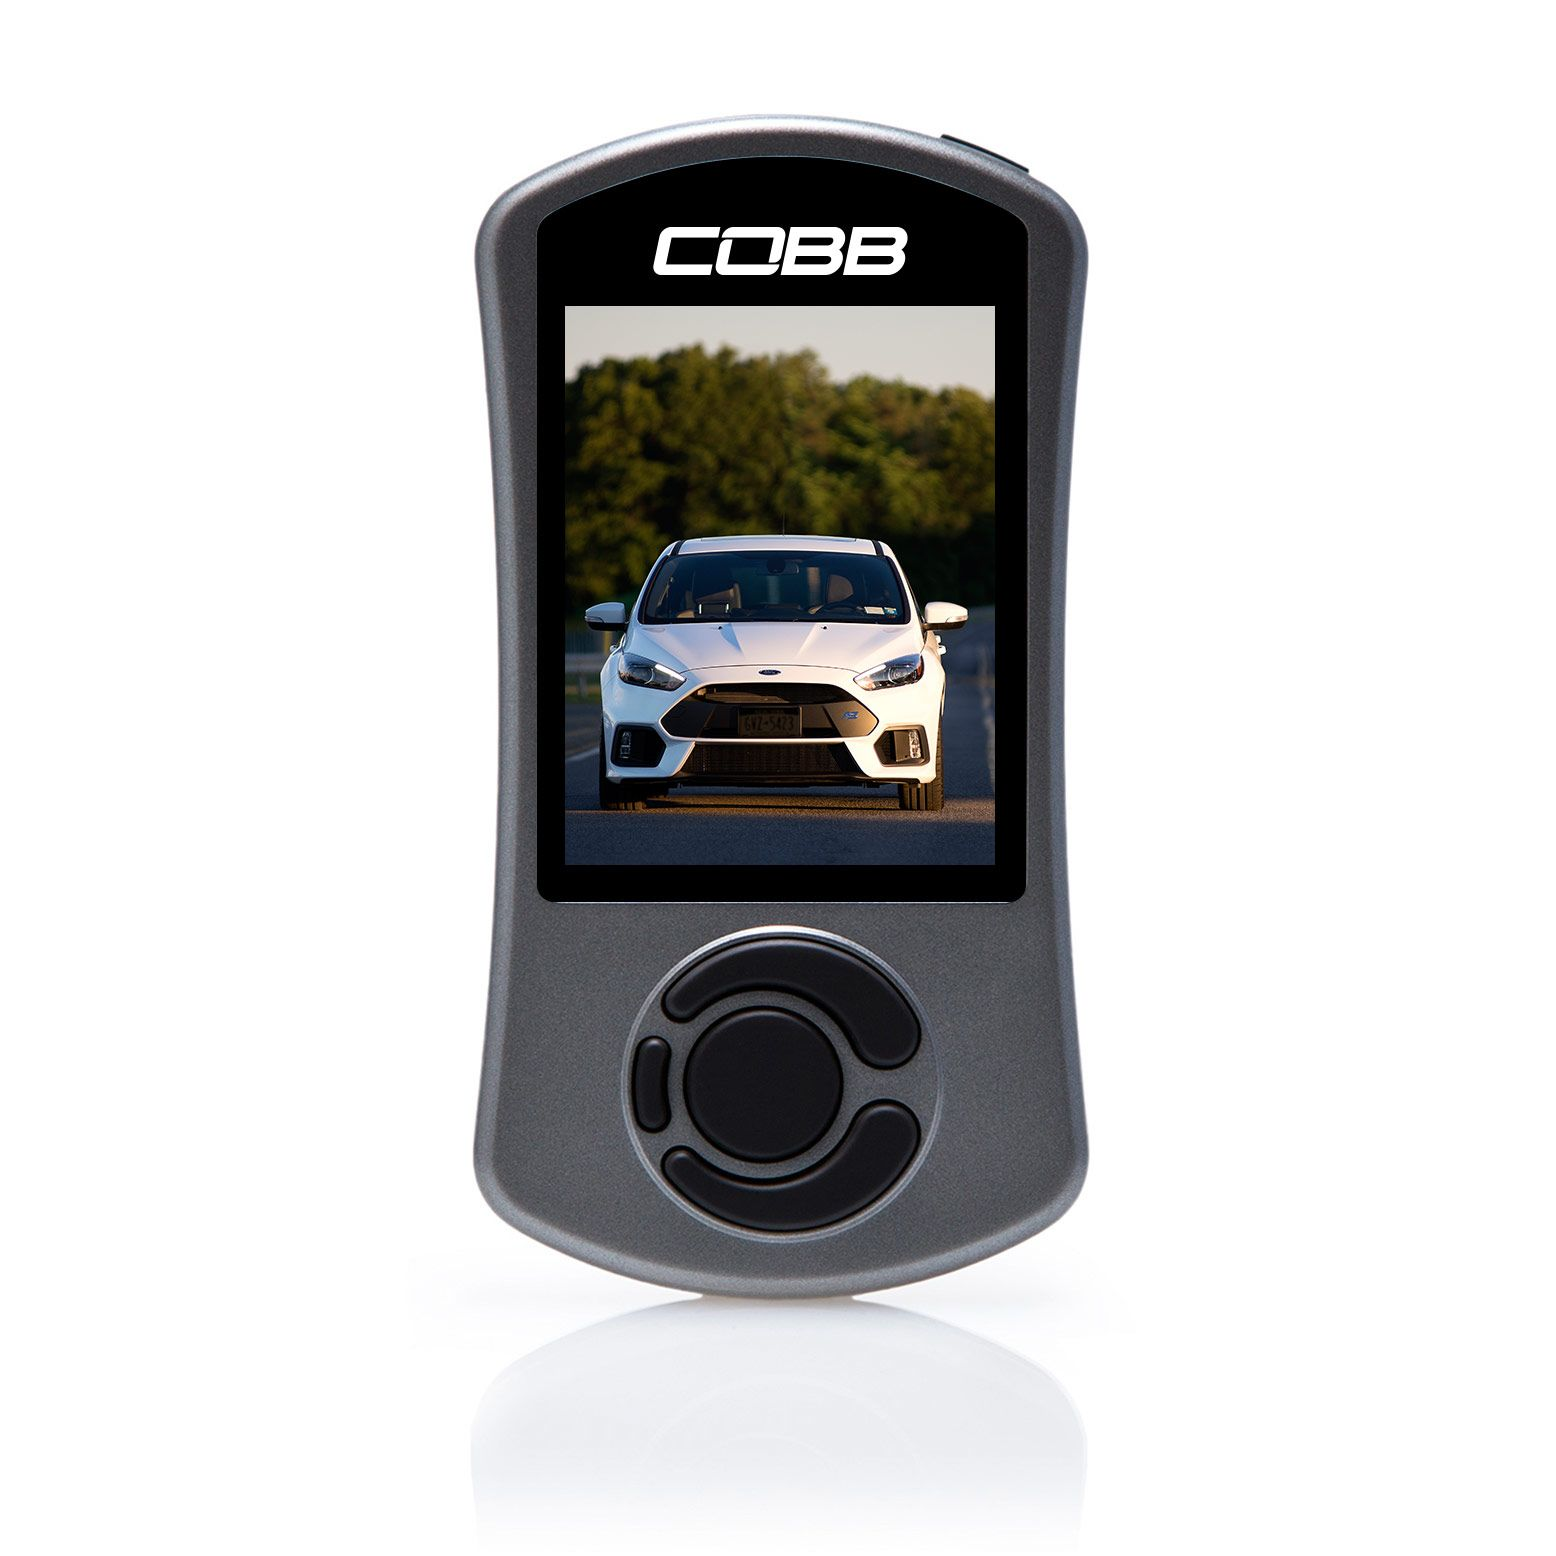 *Cobb AccessPORT V3 ECU Flash Tuner Ford Focus ST (AP3-FOR-001)